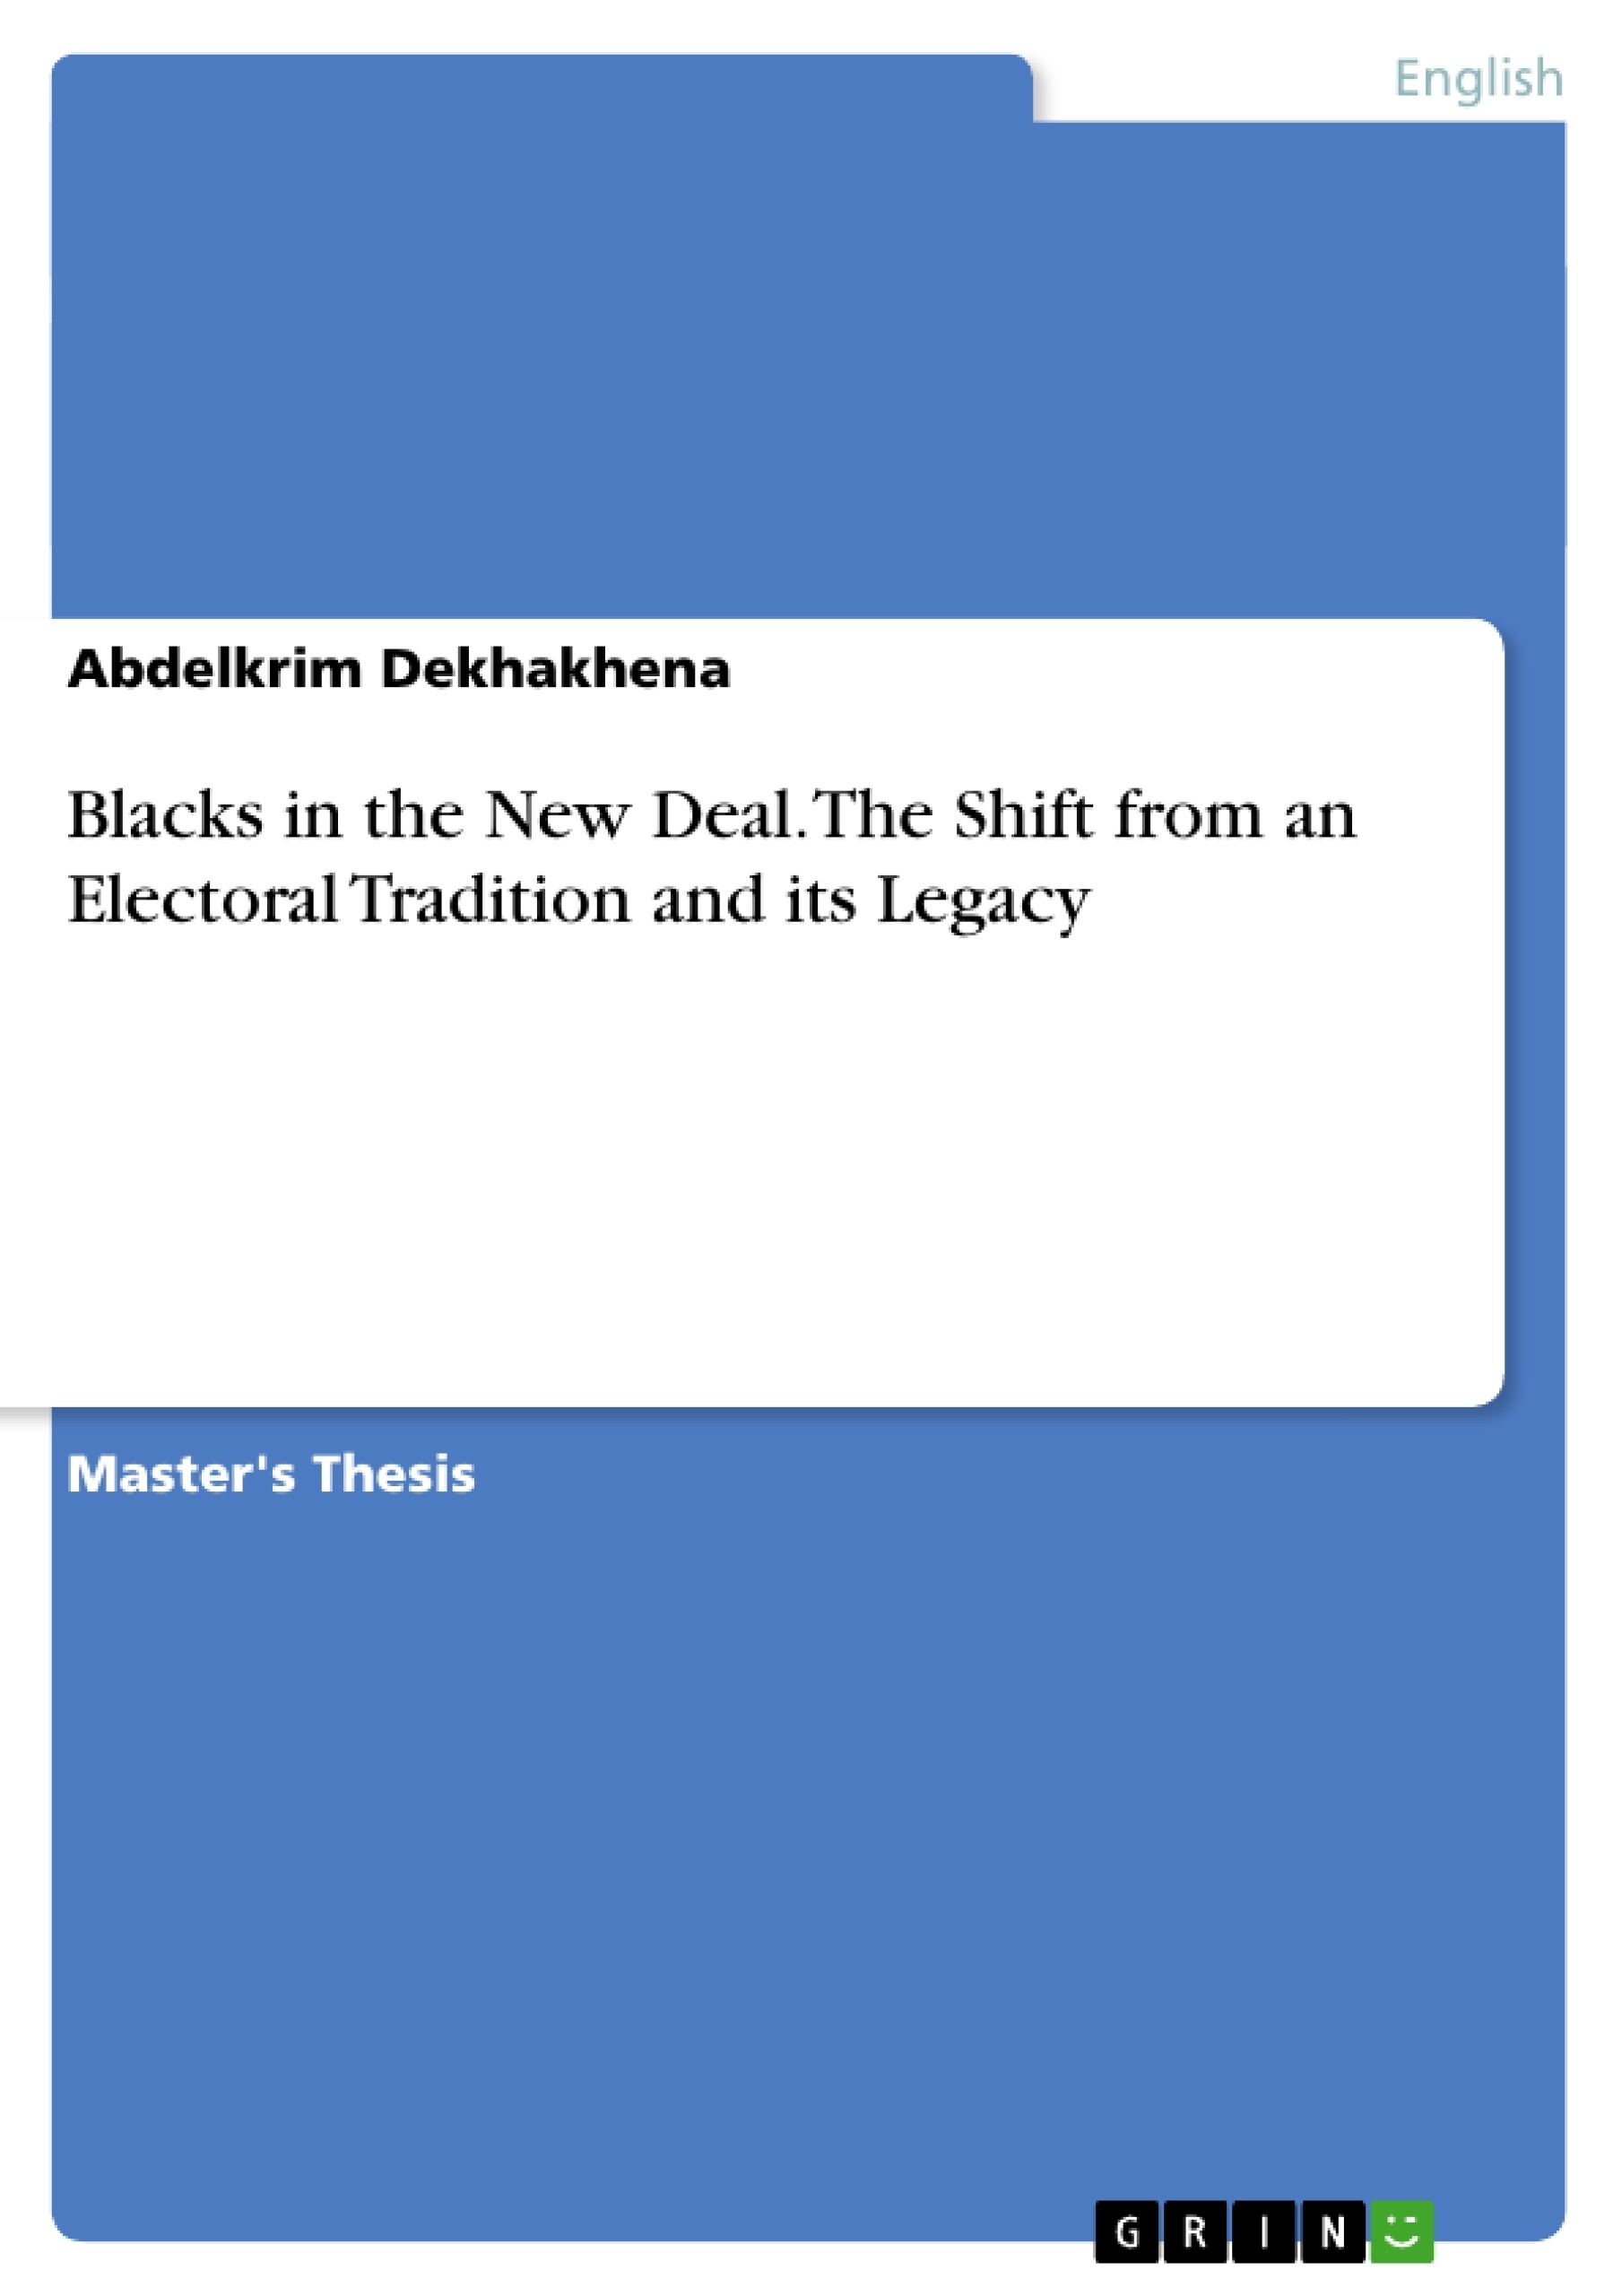 blacks in the new deal the shift from an electoral tradition and blacks in the new deal the shift from an electoral tradition and publish your master s thesis bachelor s thesis essay or term paper